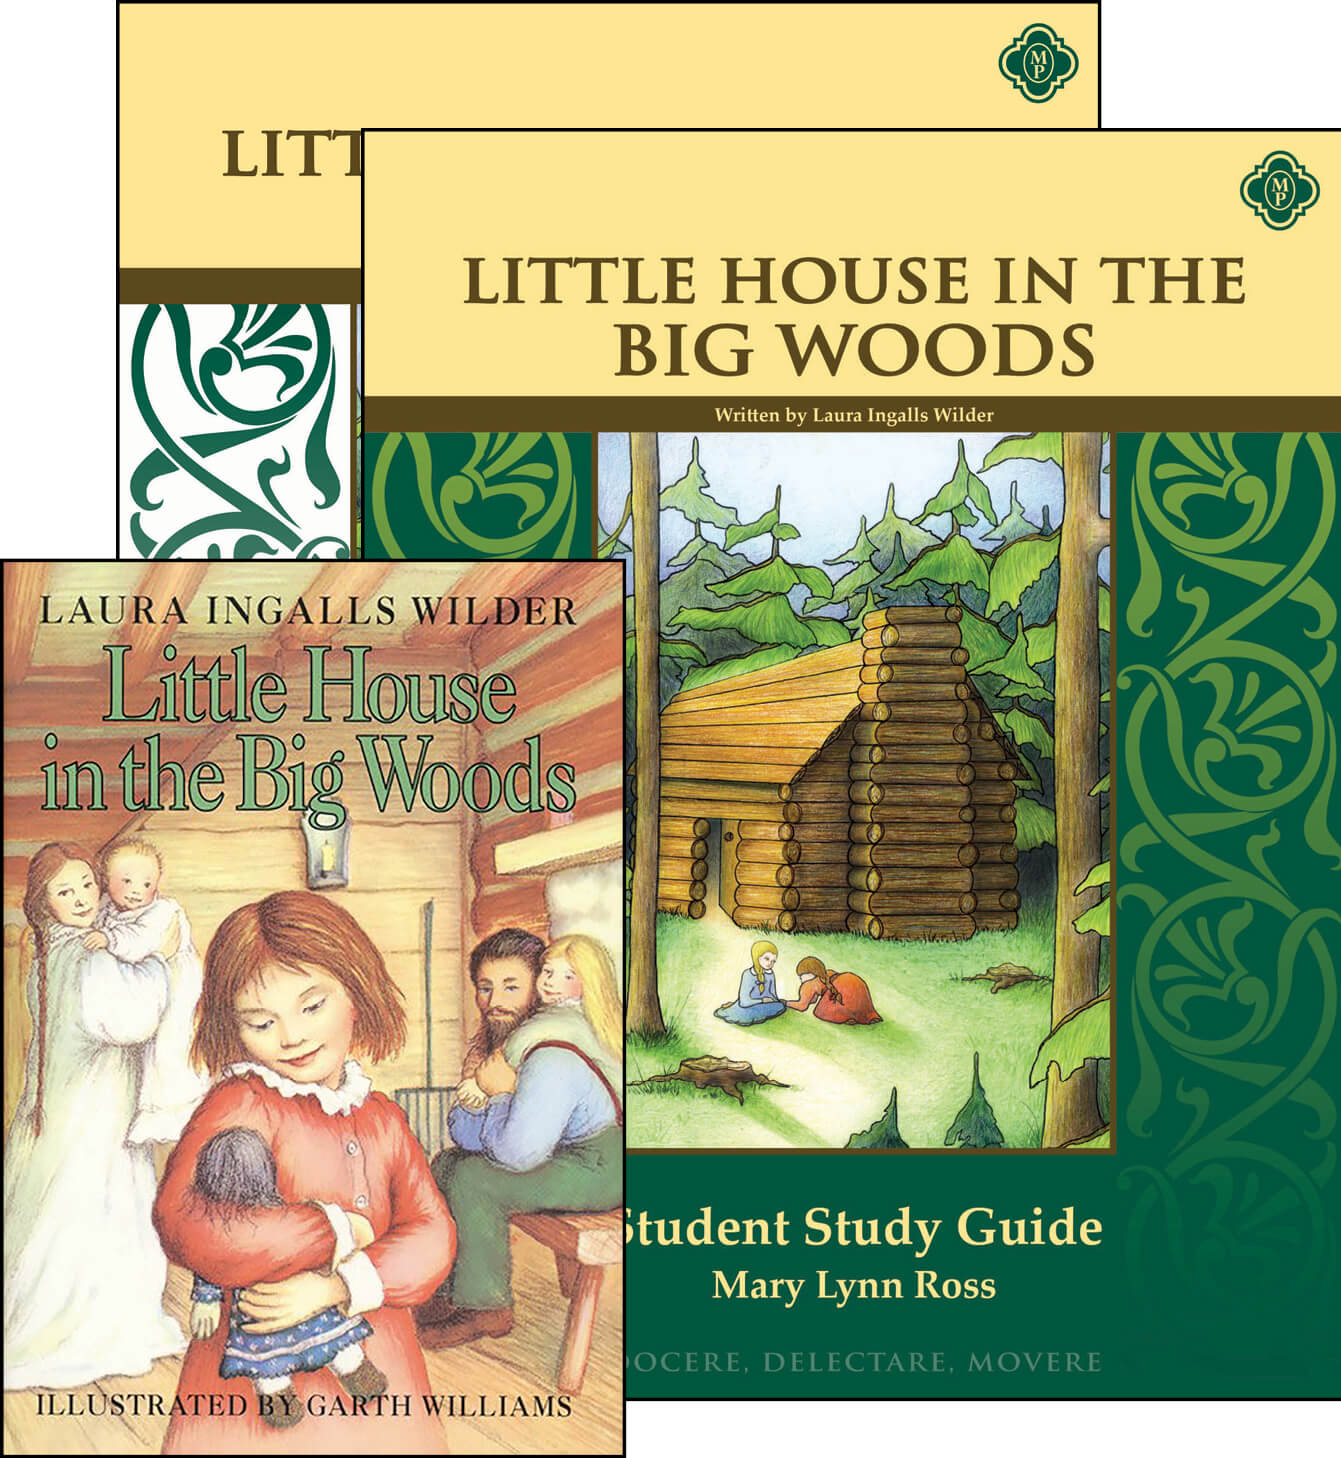 Little House in the Big Woods set